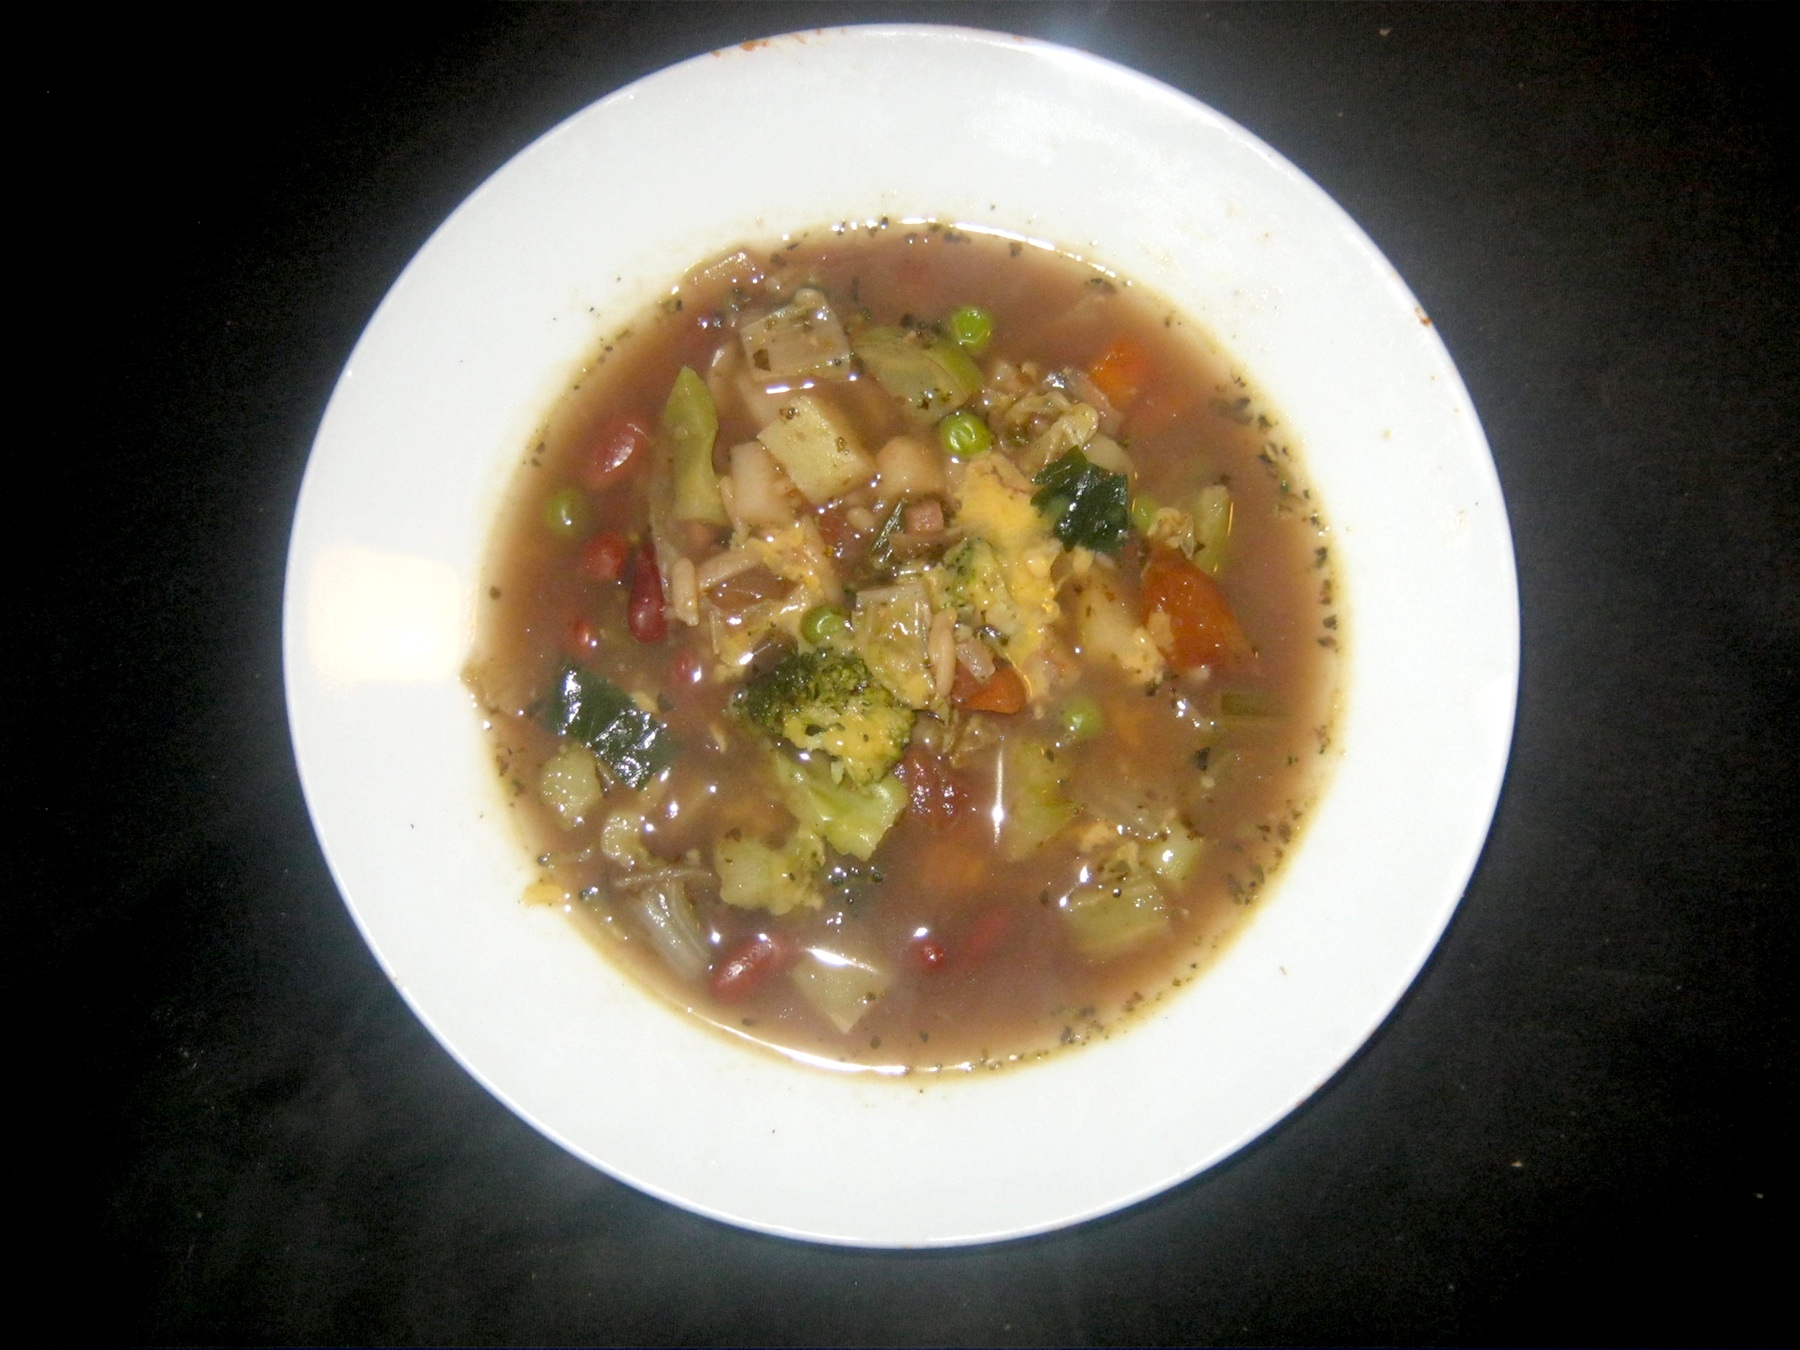 Minestrone served in white bowl